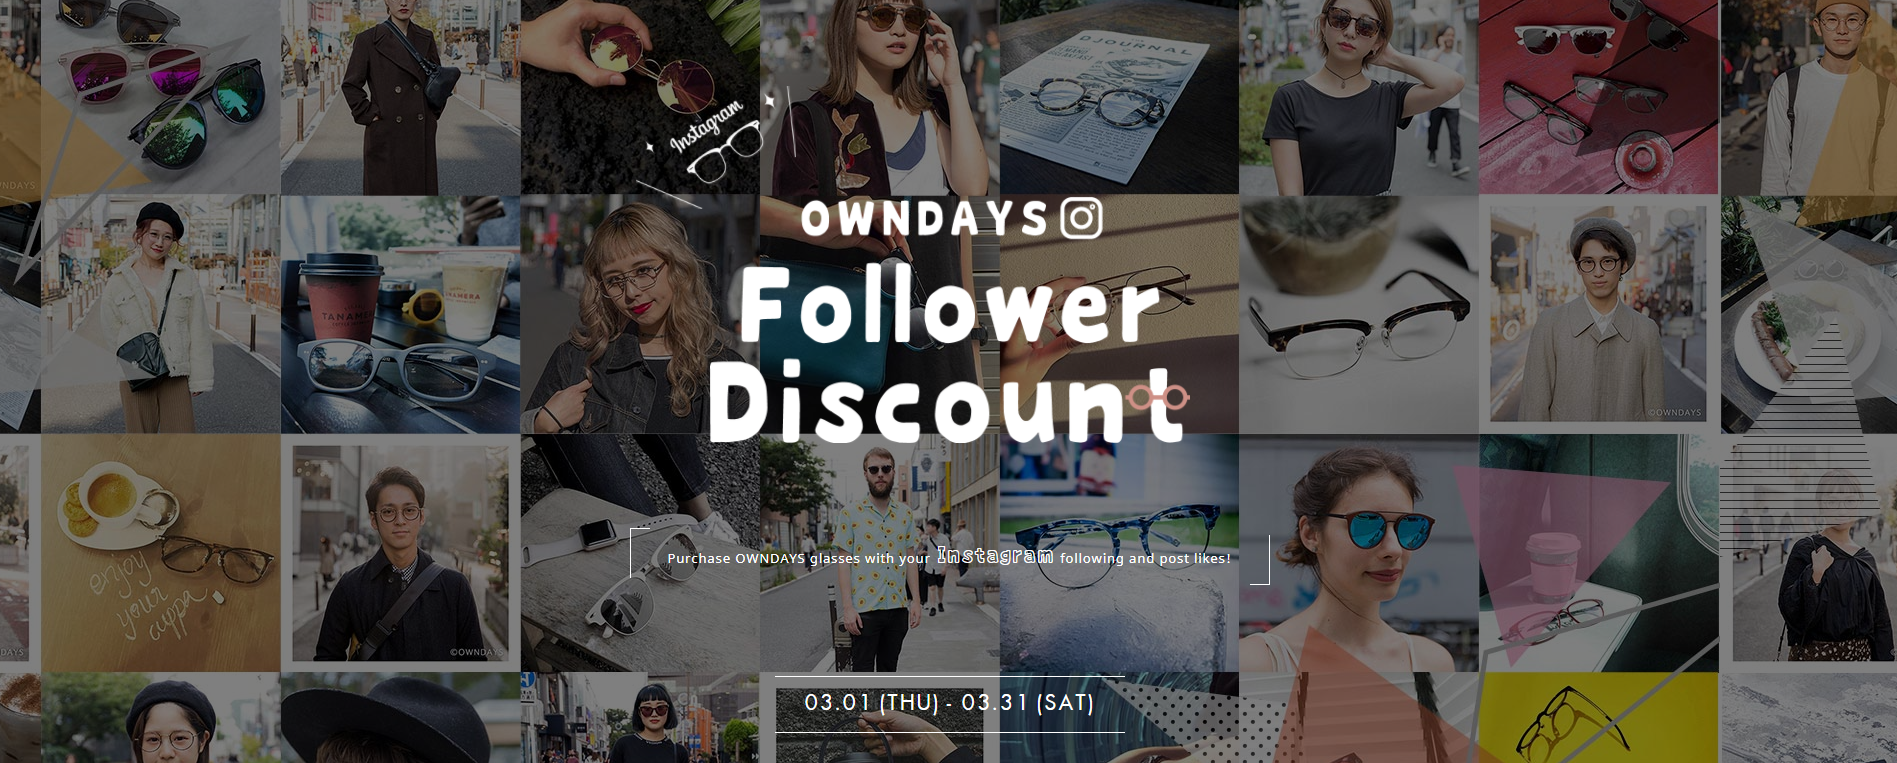 OWNDAYS is offering discounts based on your Instagram's followers and Post Likes